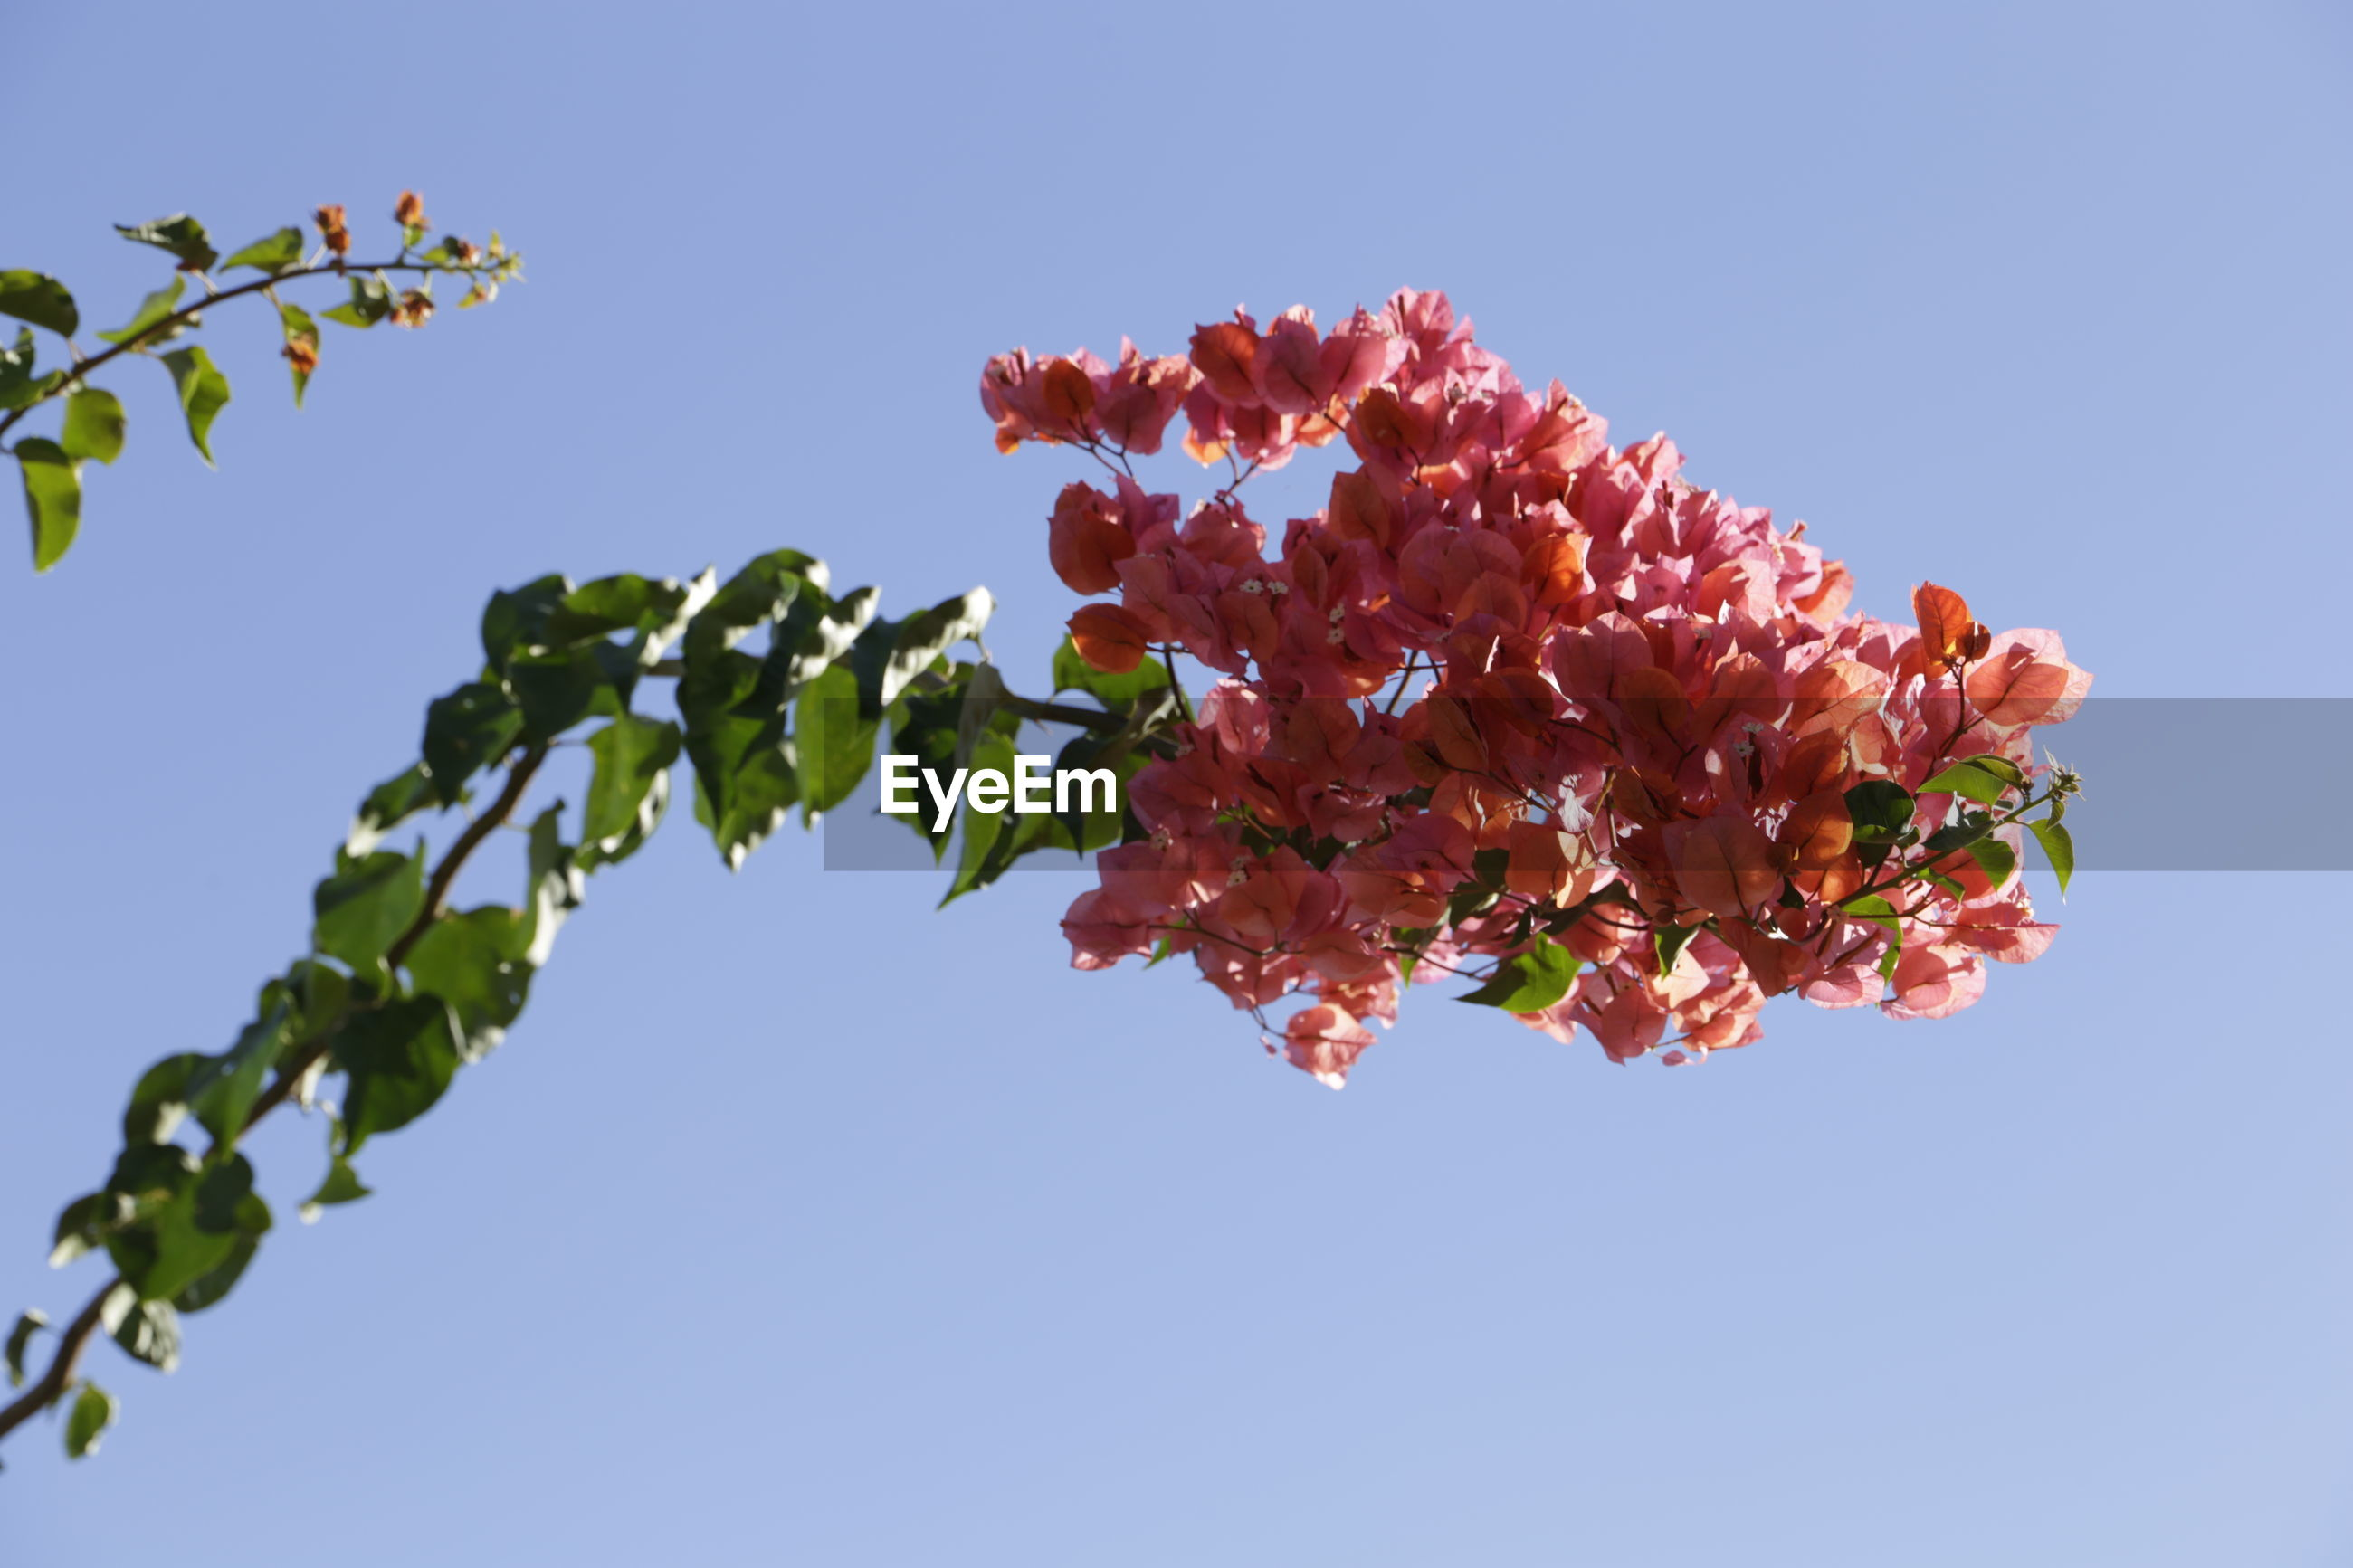 LOW ANGLE VIEW OF FLOWERS ON TREE AGAINST SKY